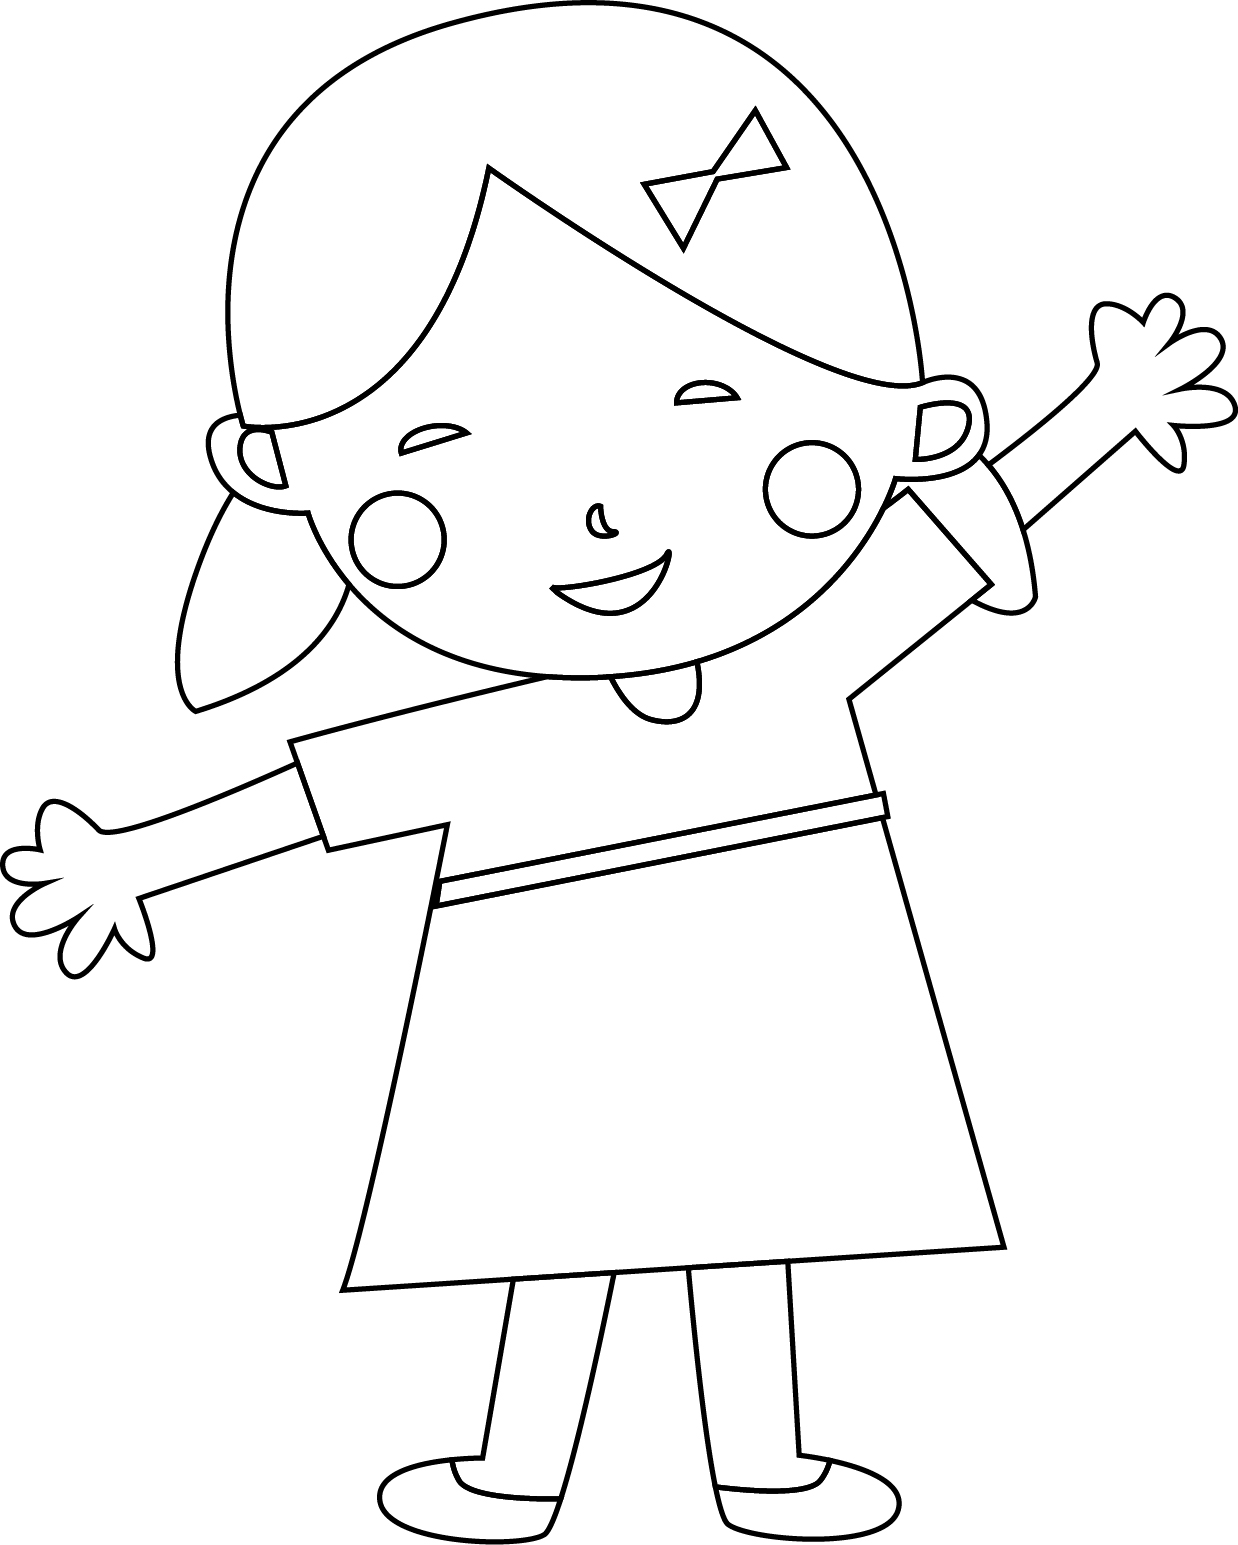 child coloring page - Coloring Pictures Of Children